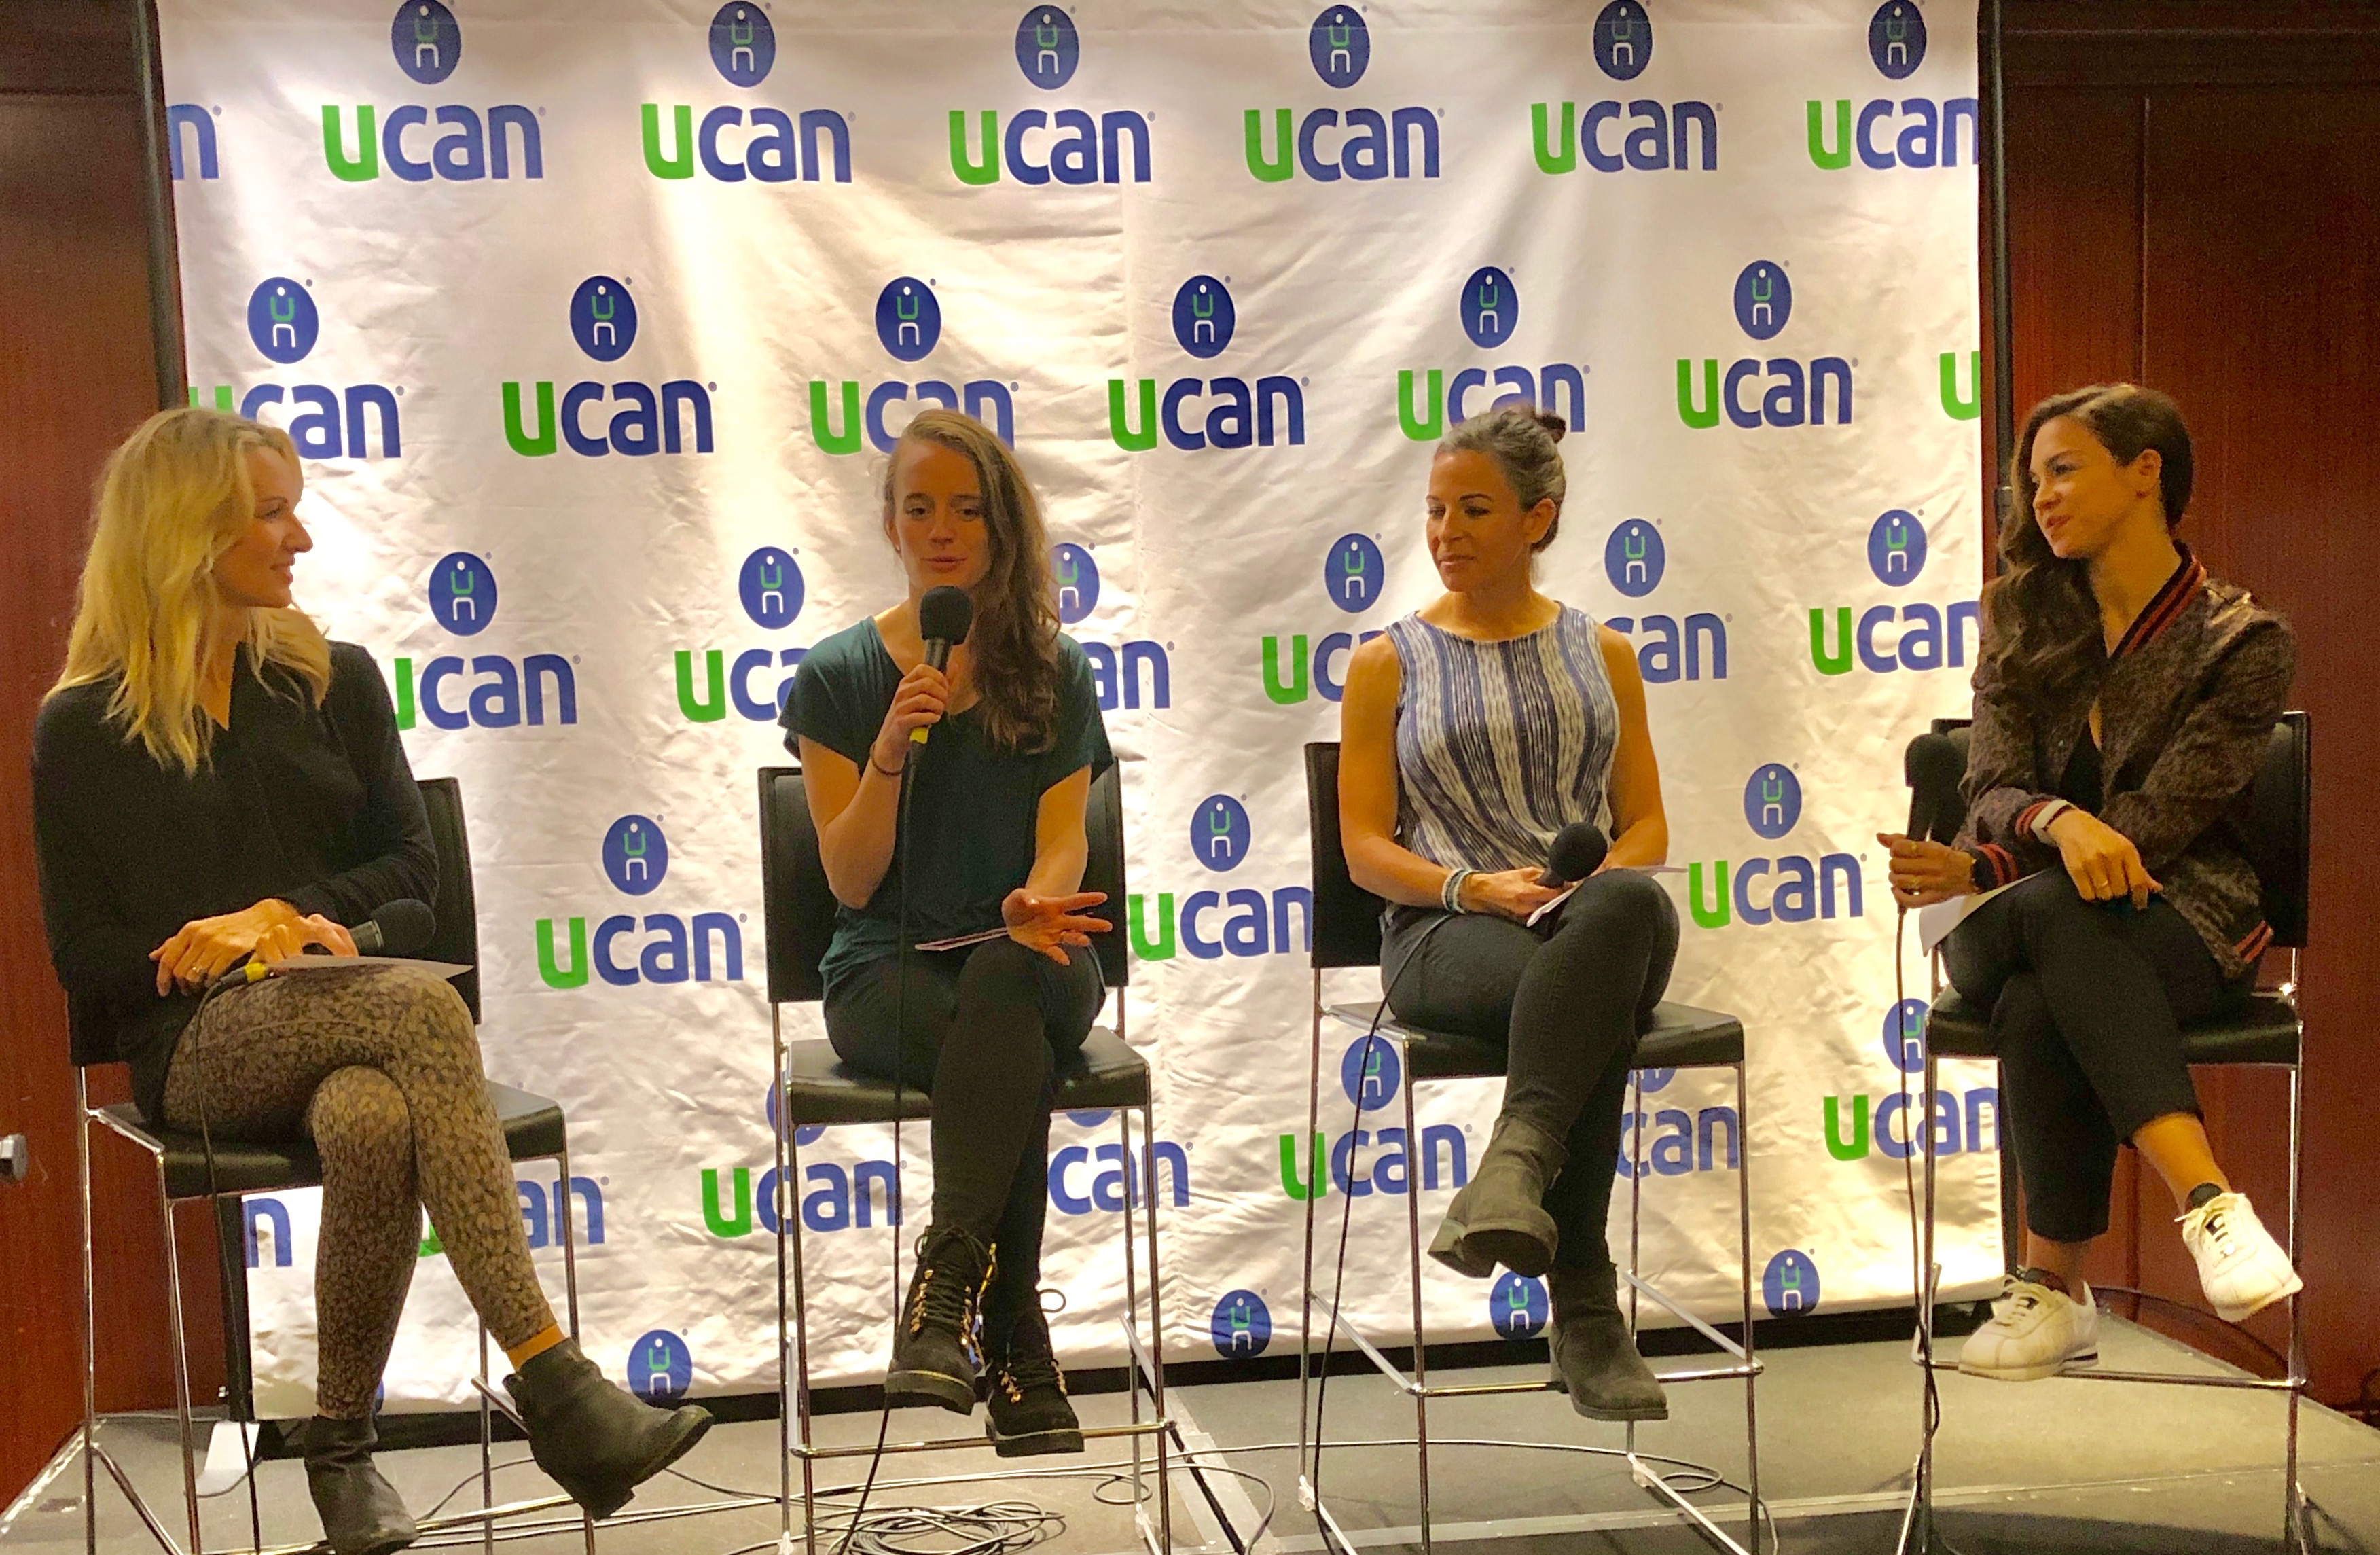 BONUS NYC UCAN Live Show: Emily Abbate, Angie Spencer, and Carrie Tollefson – R4R 157